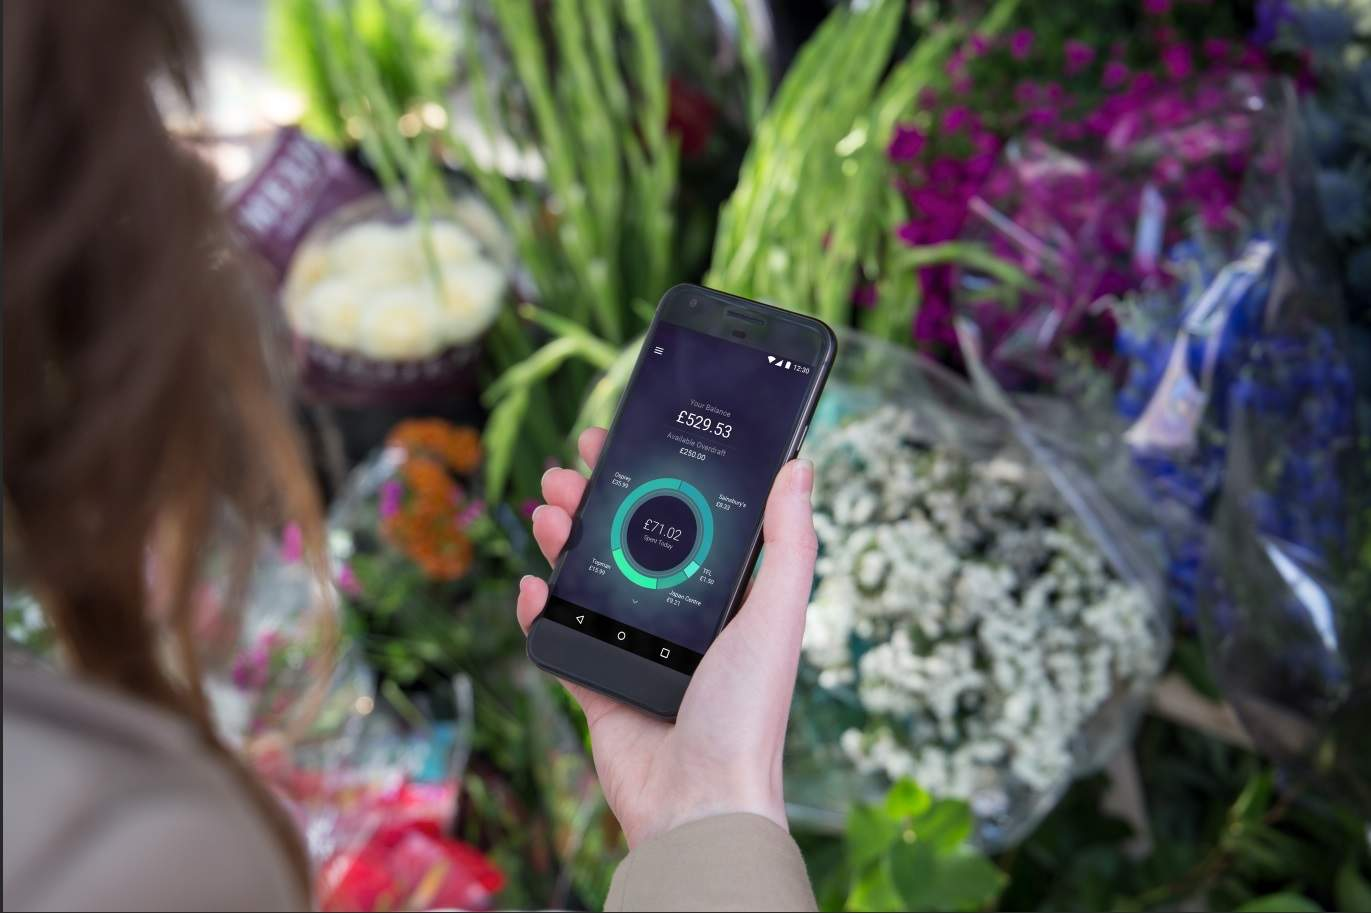 Starling Bank Lifestyle 1 - Starling Bank Marketplace adds mobile phone insurance